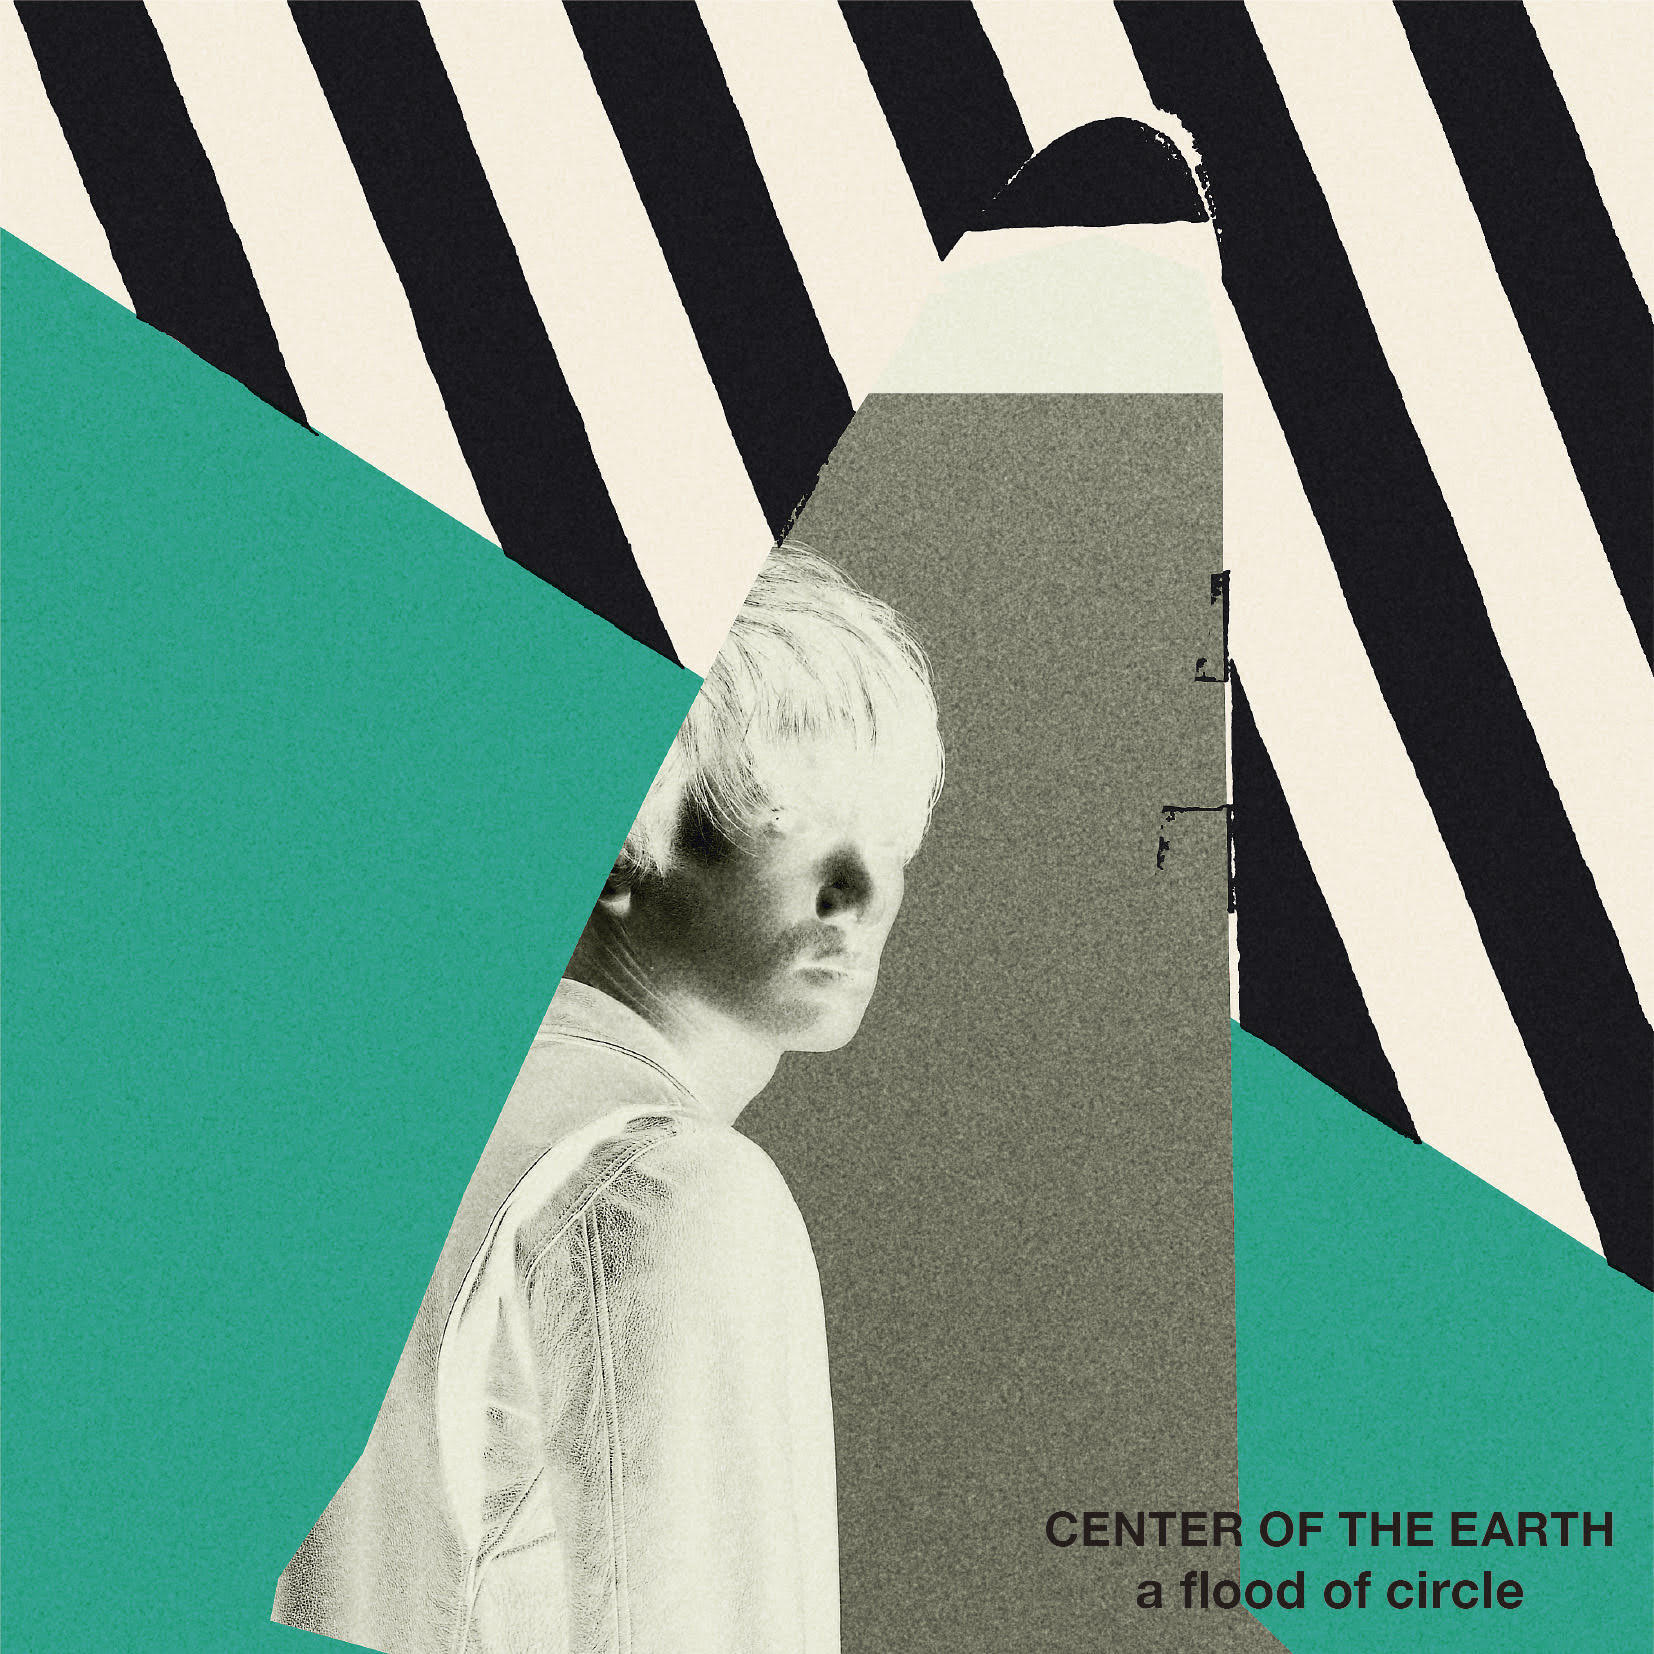 『CENTER OF THE EARTH』